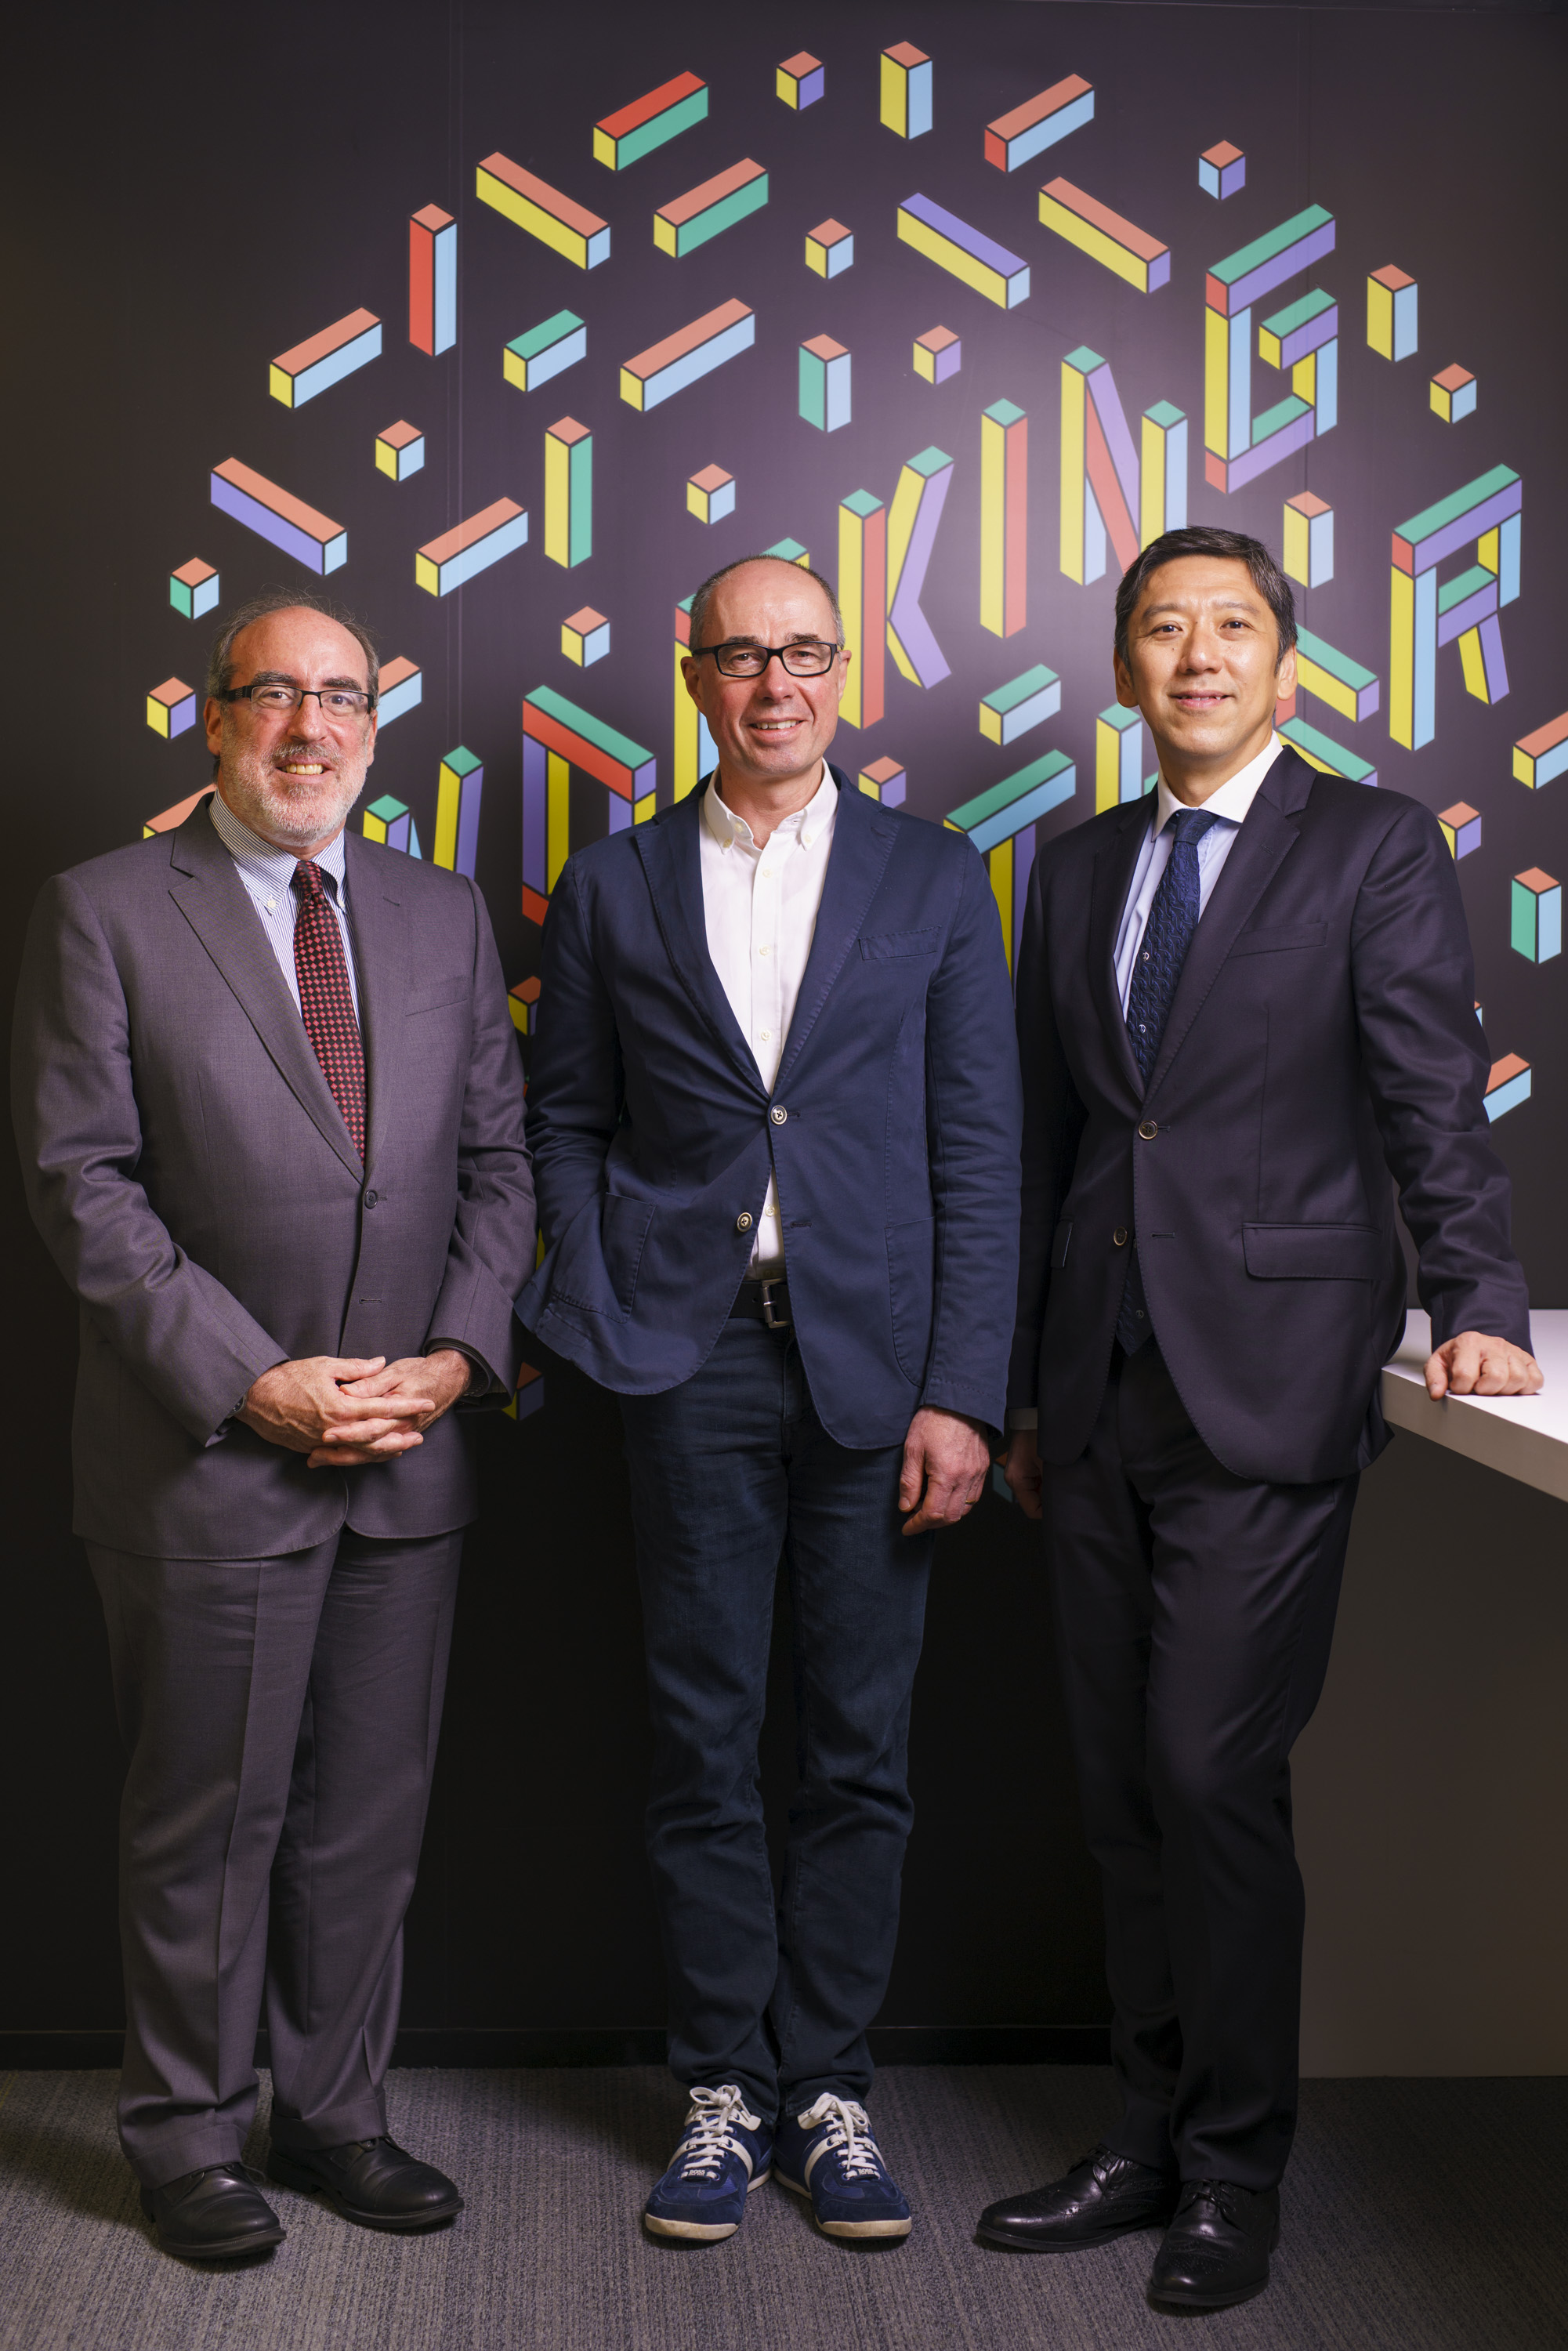 (Left to Right) Jeff Schwartz, Principal; Brett Walsh, Partner; and Jungle Wong, Chief Talent Officer. All members of Deloitte.